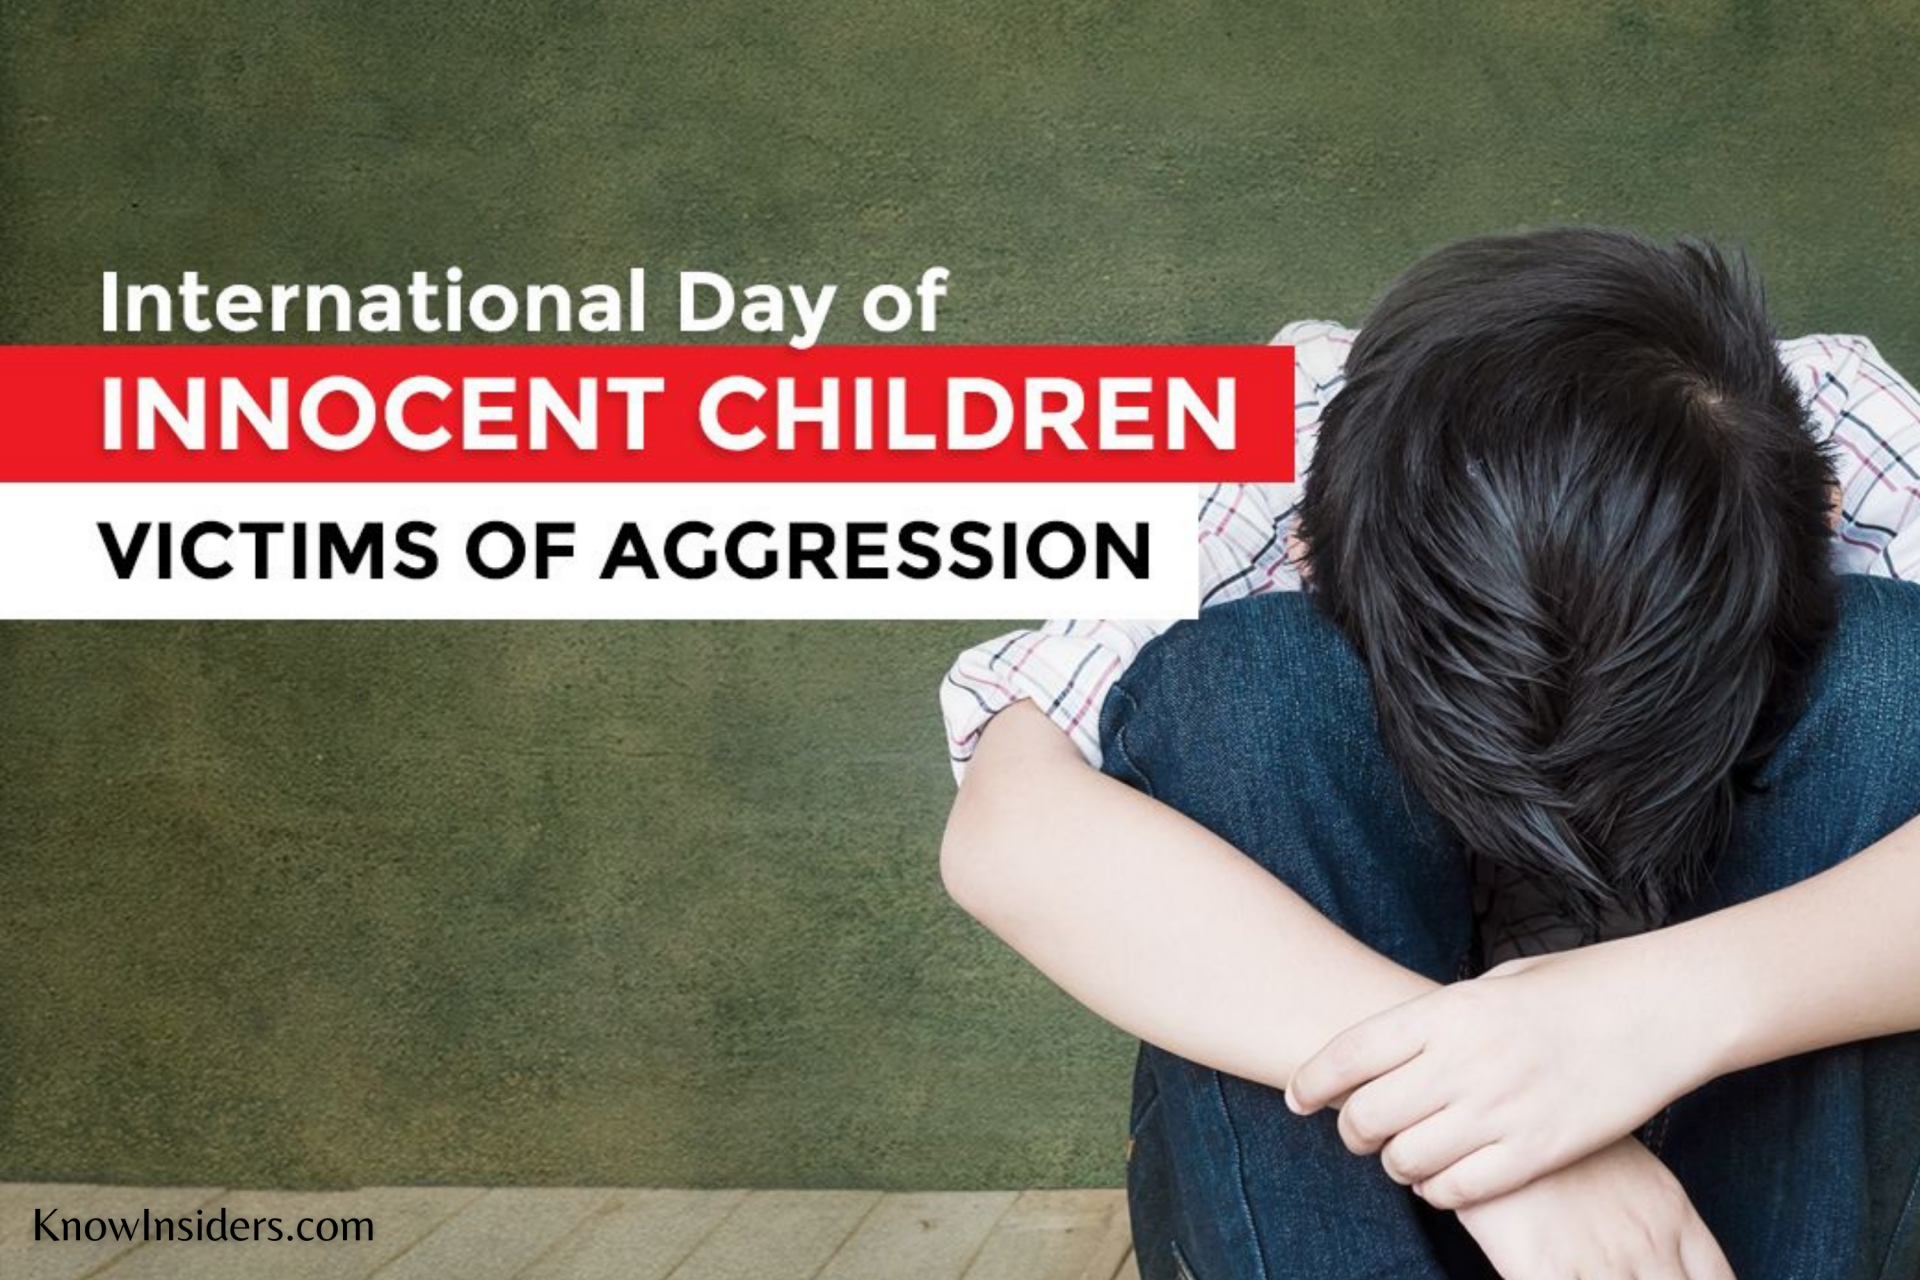 International Day of Innocent Children Victims of Aggression: History, Significance and Celebrations